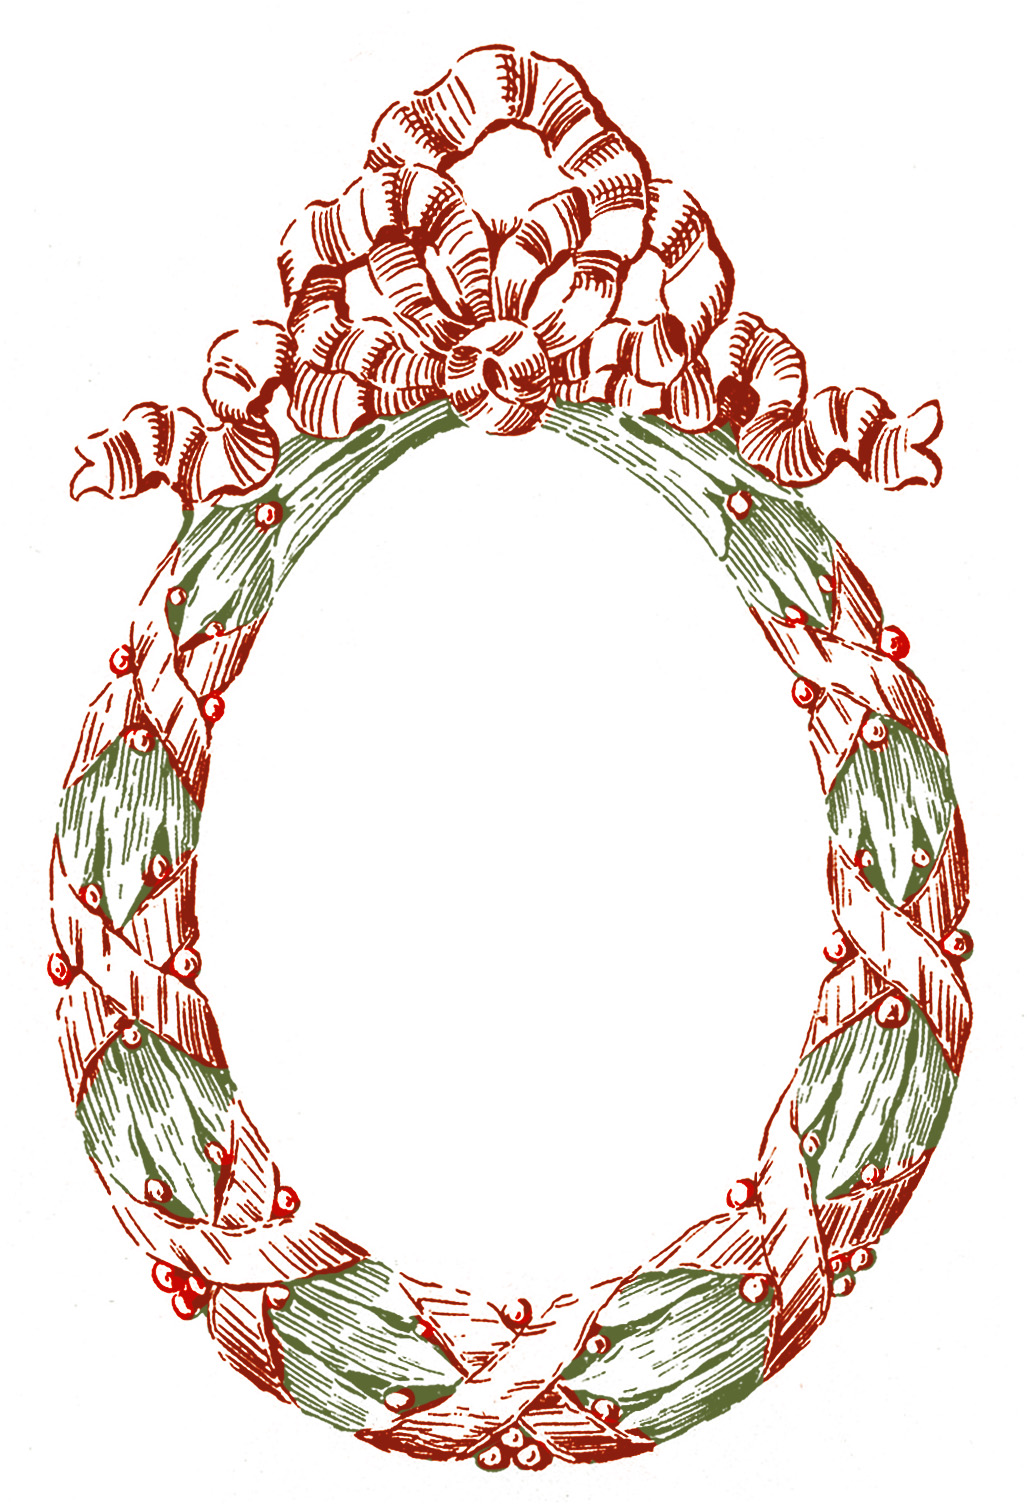 Red and Green Laurel Wreath Image